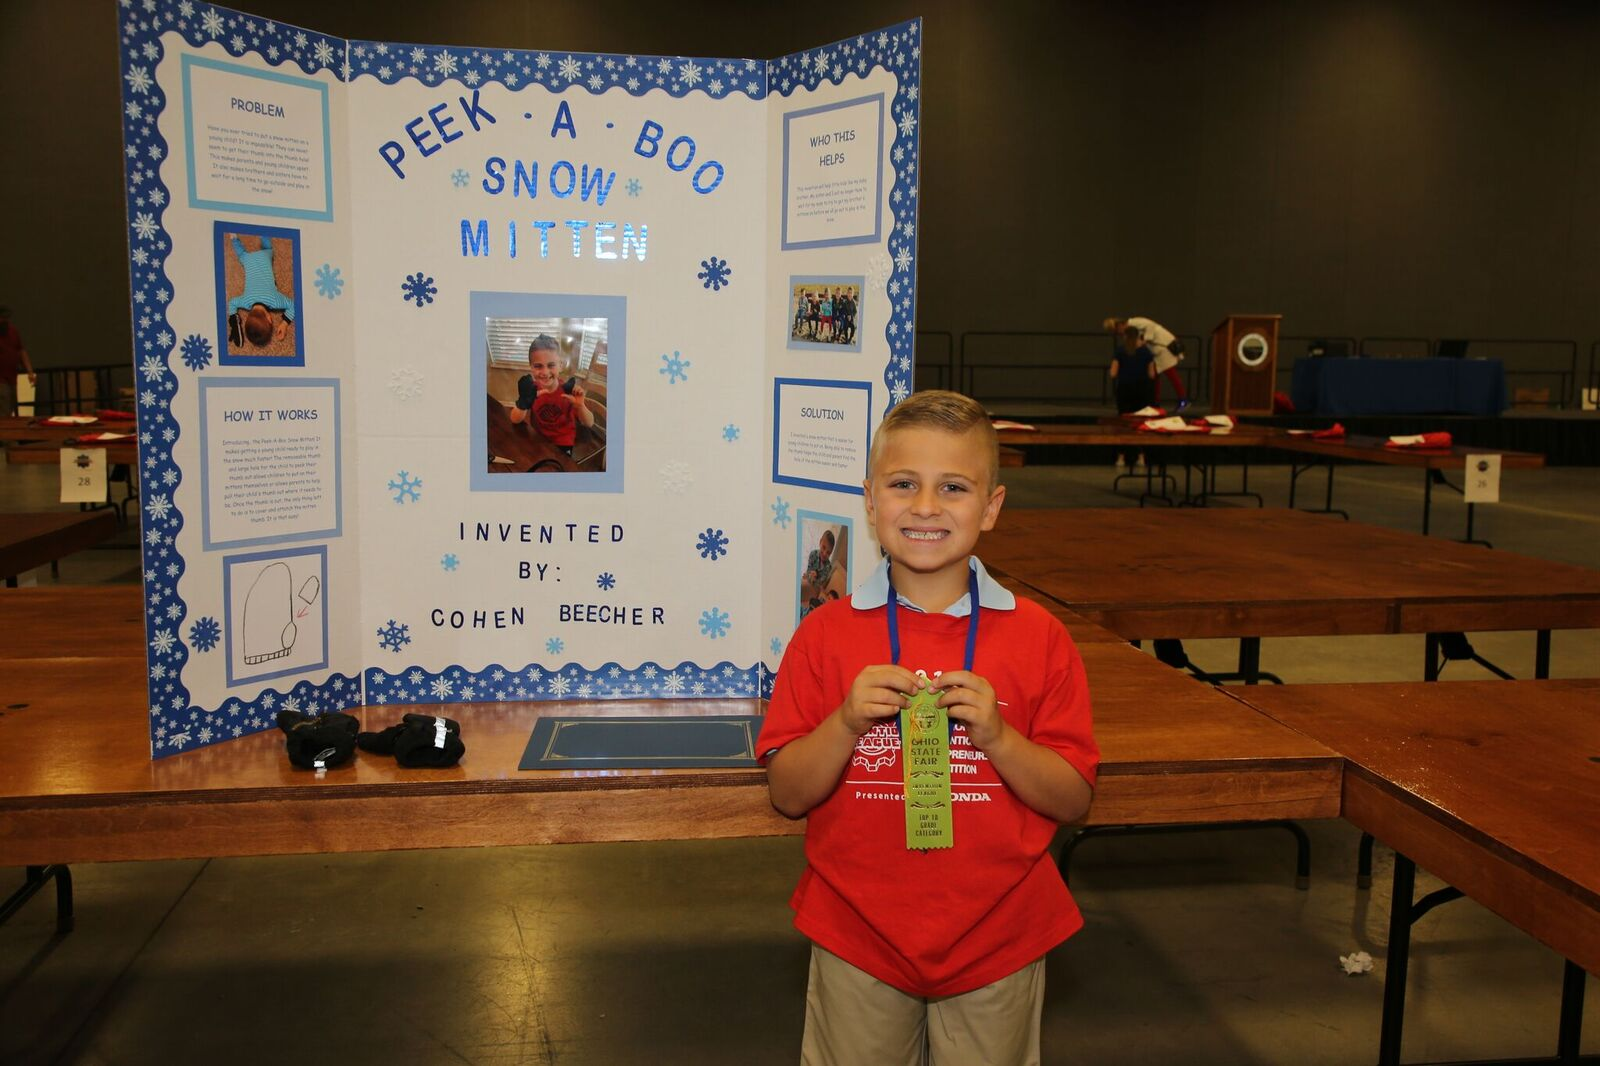 Cohen Beecher with his national qualifying invention the peek-a-boo snow mitten